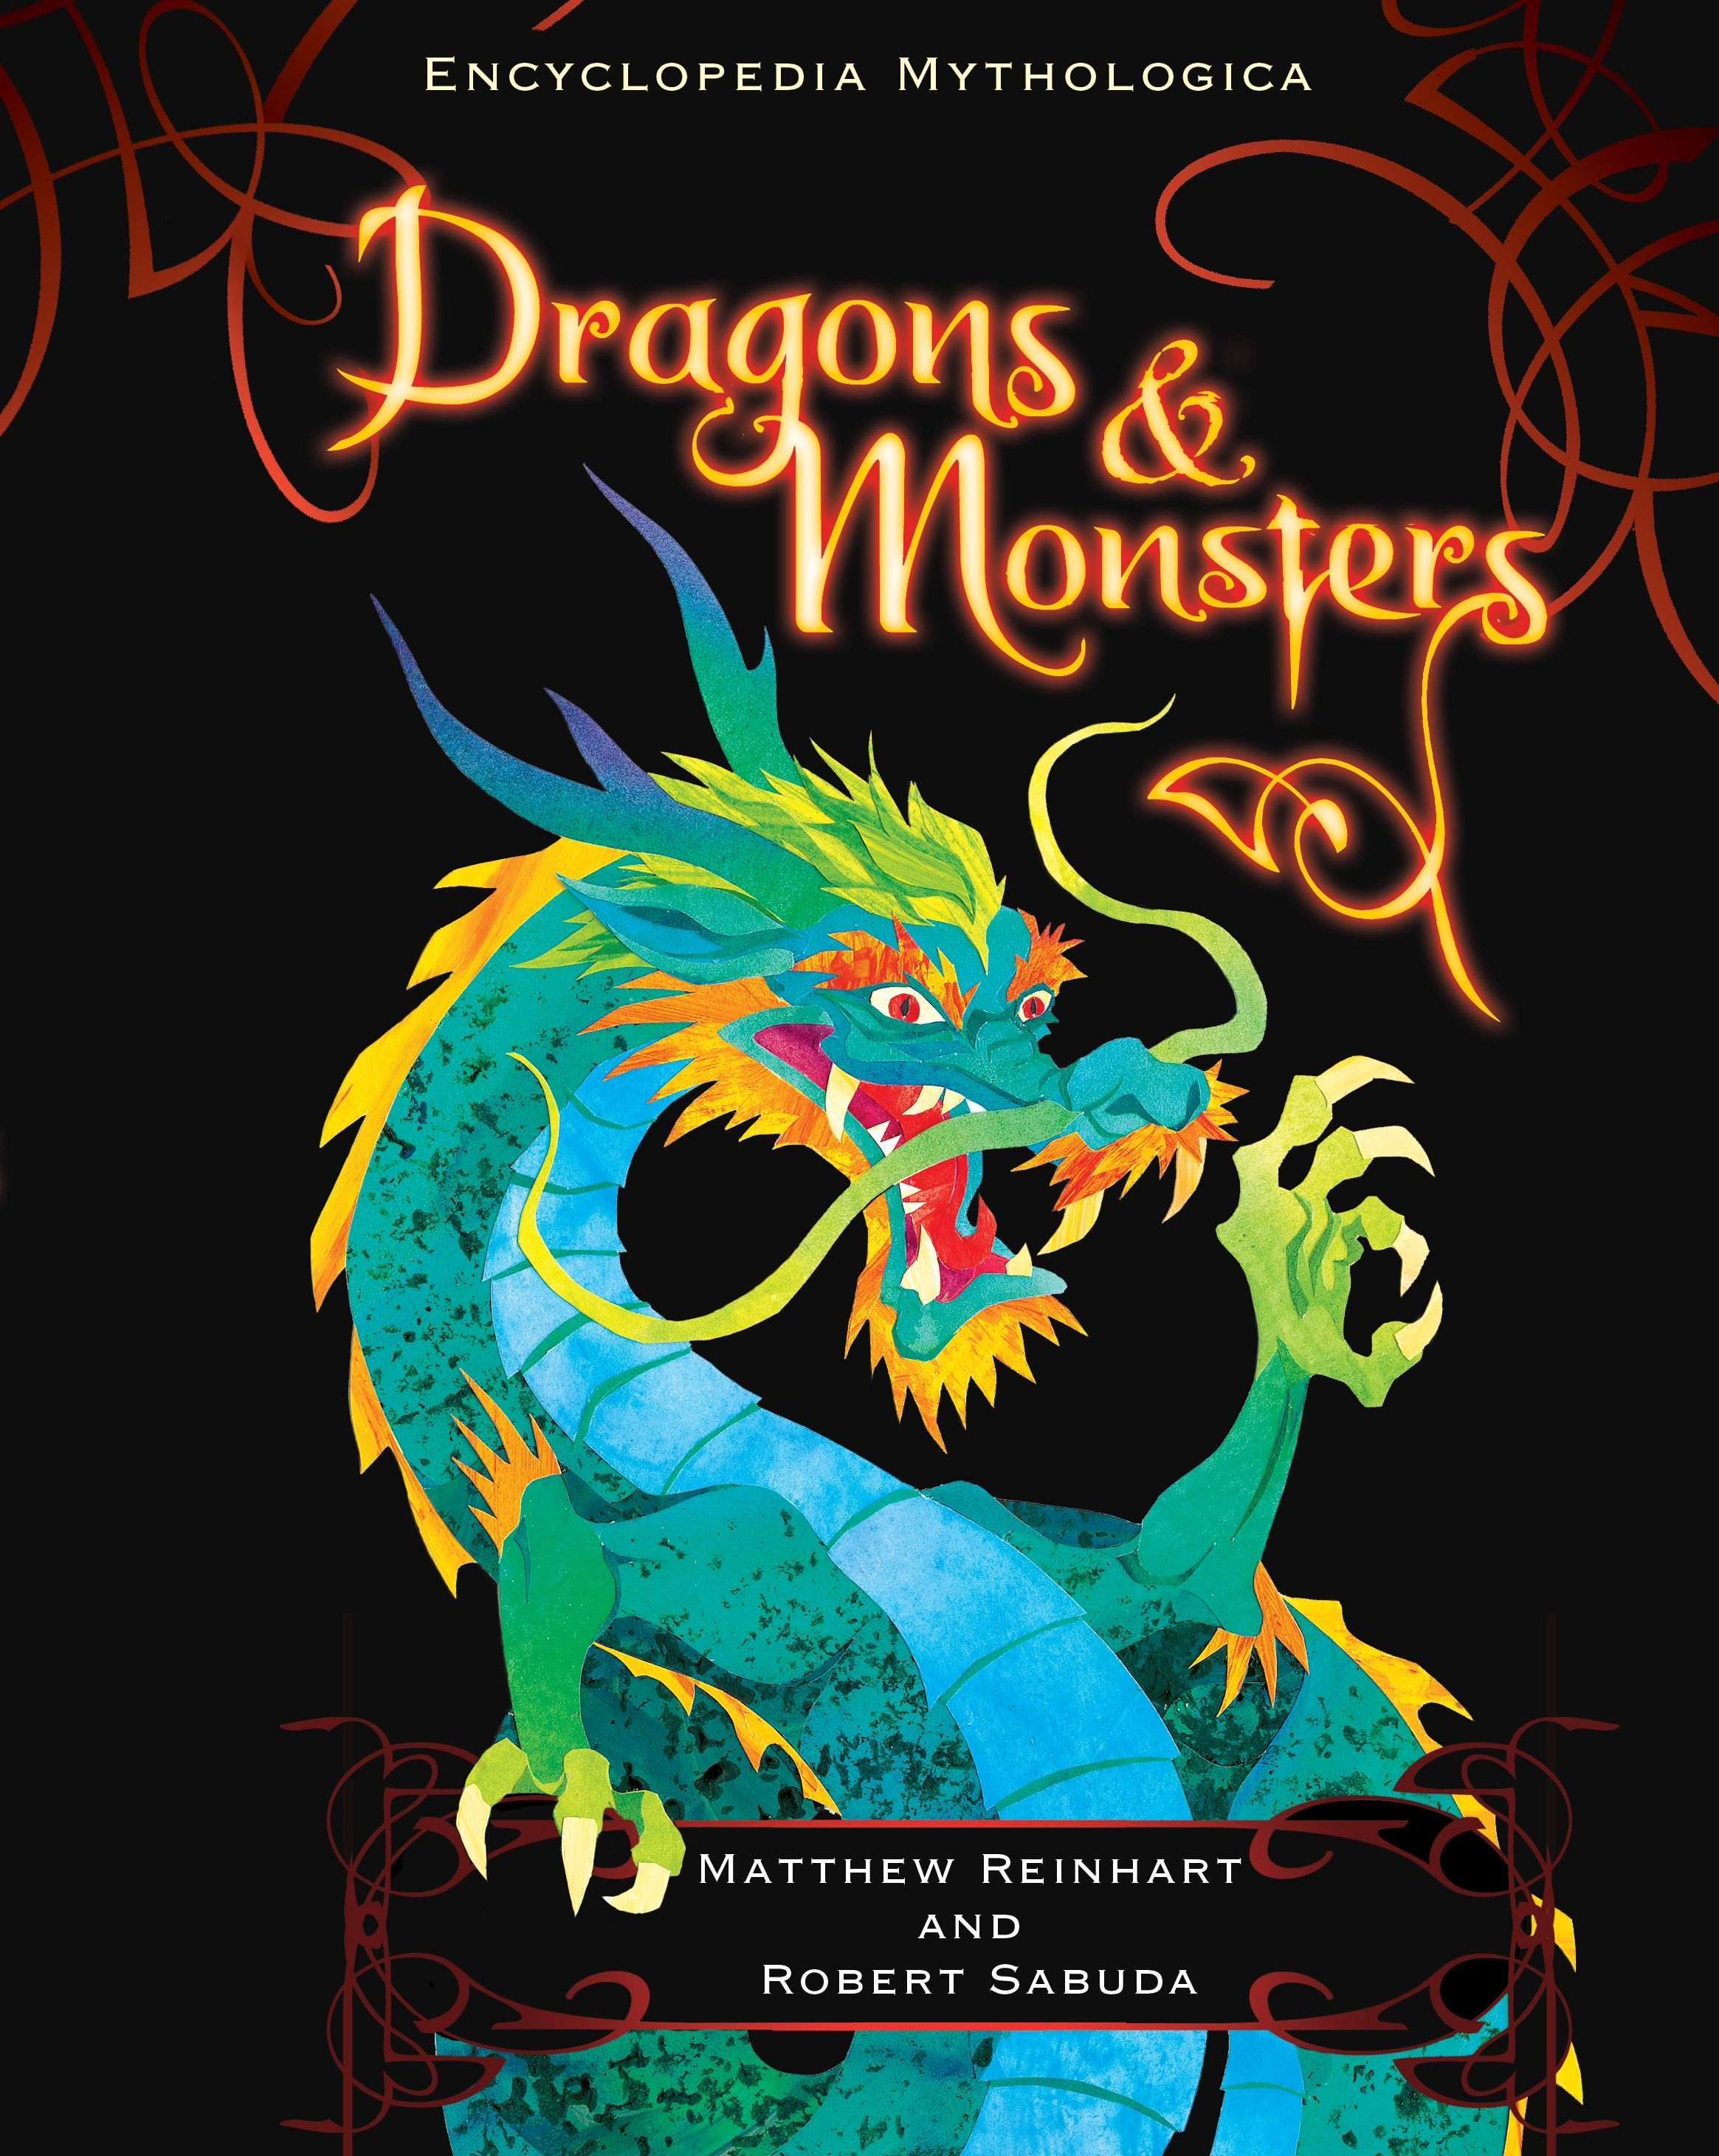 In a breathtaking book, the world's mythical pop-up masters - Reinhart and Robert Sabuda - unleash monsters and dragons that have prowled countrysides and imaginations for centuries. HC 9780763631734 / Ages 5 & up